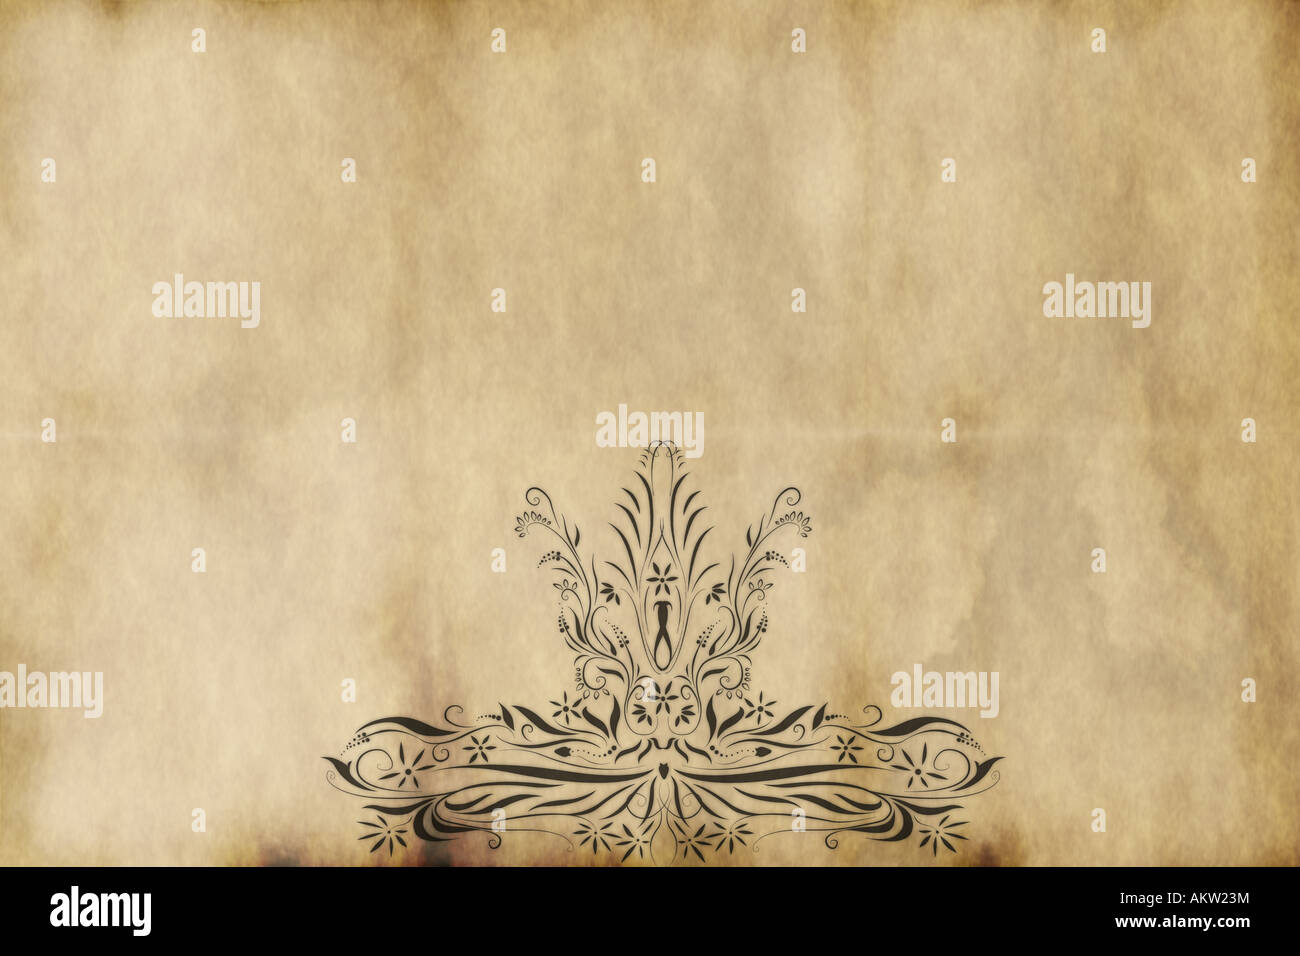 regal style design printed on old paper - Stock Image